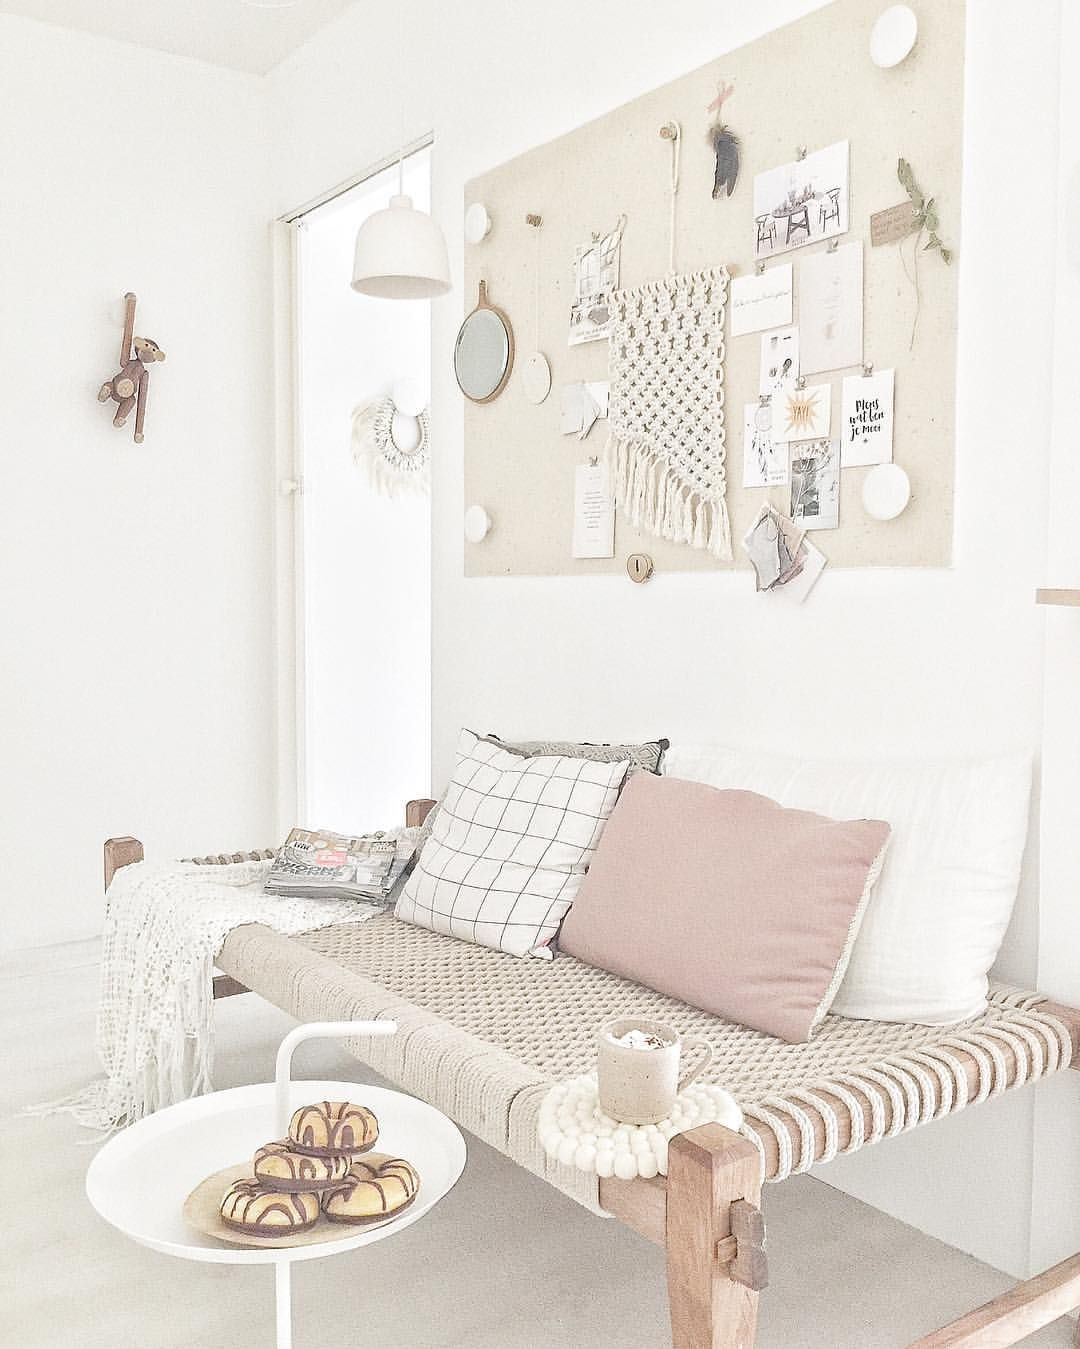 Pin by Aissatel Amet on Canapé | Pinterest | Daybed, Interiors and ...